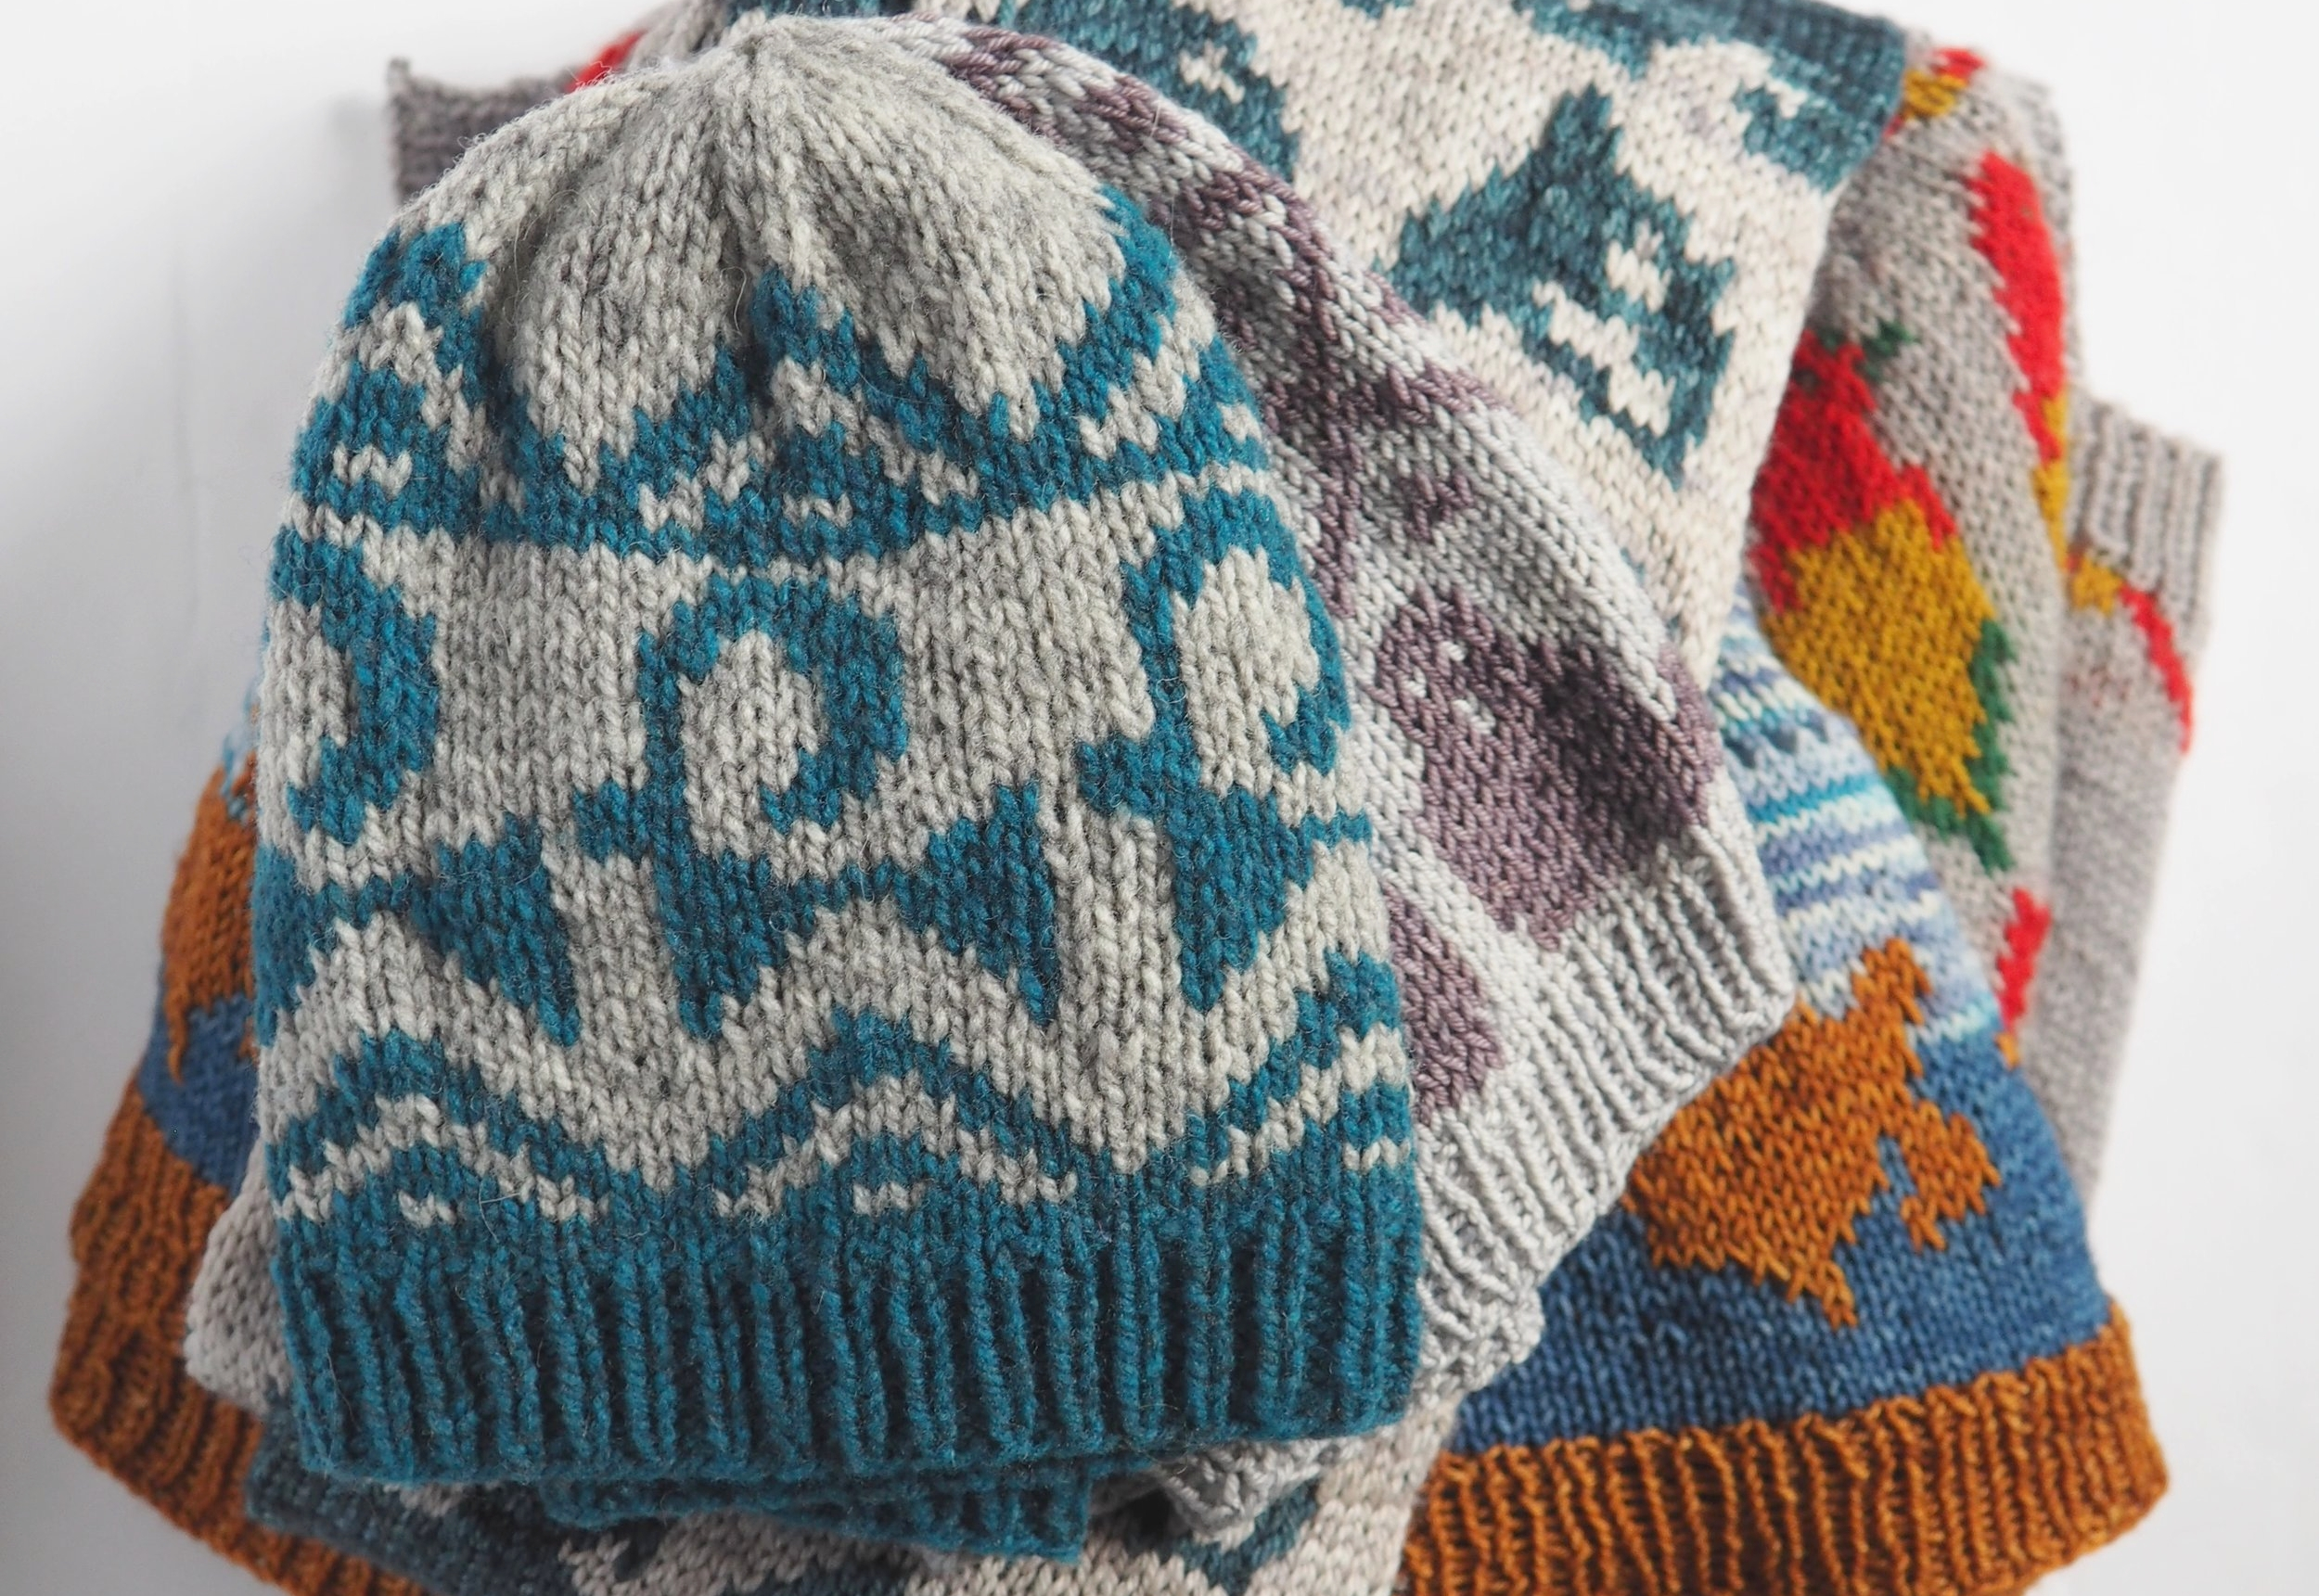 ANIMAL TRICOT- 5 PATTERNS TO EXPLORE YOUR INNER ANIMALS -